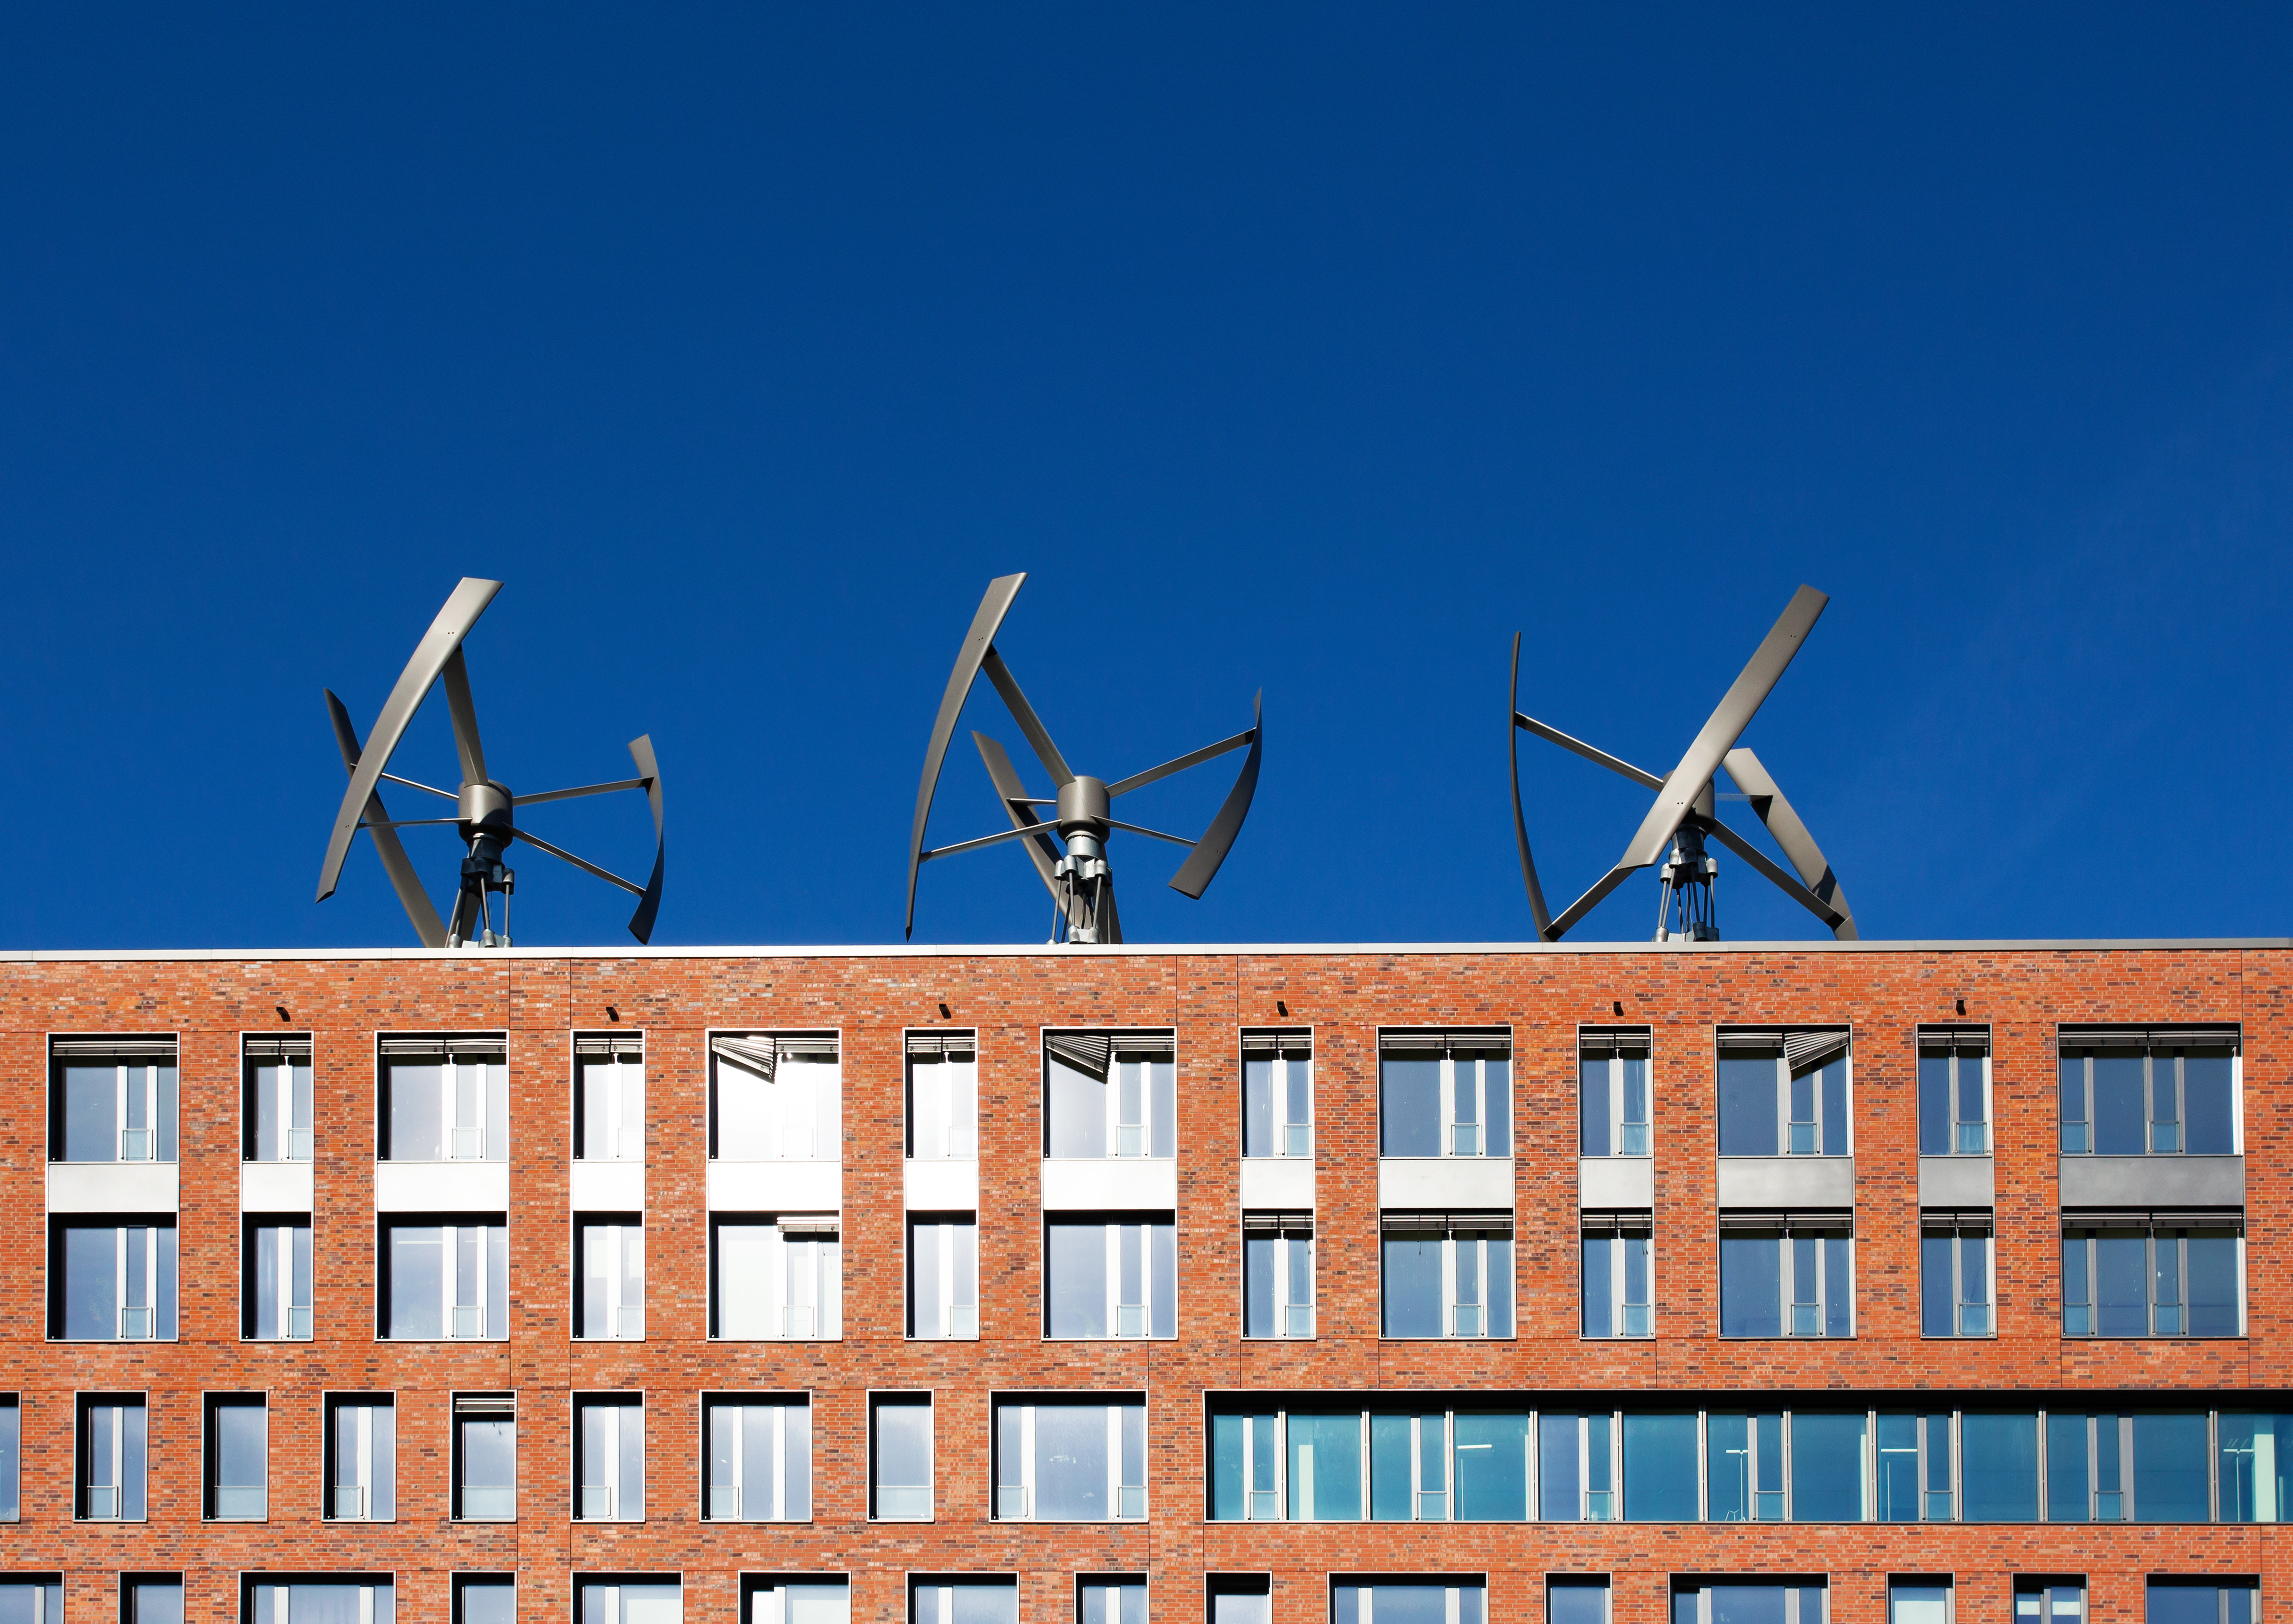 Wind turbines on the roof of a building